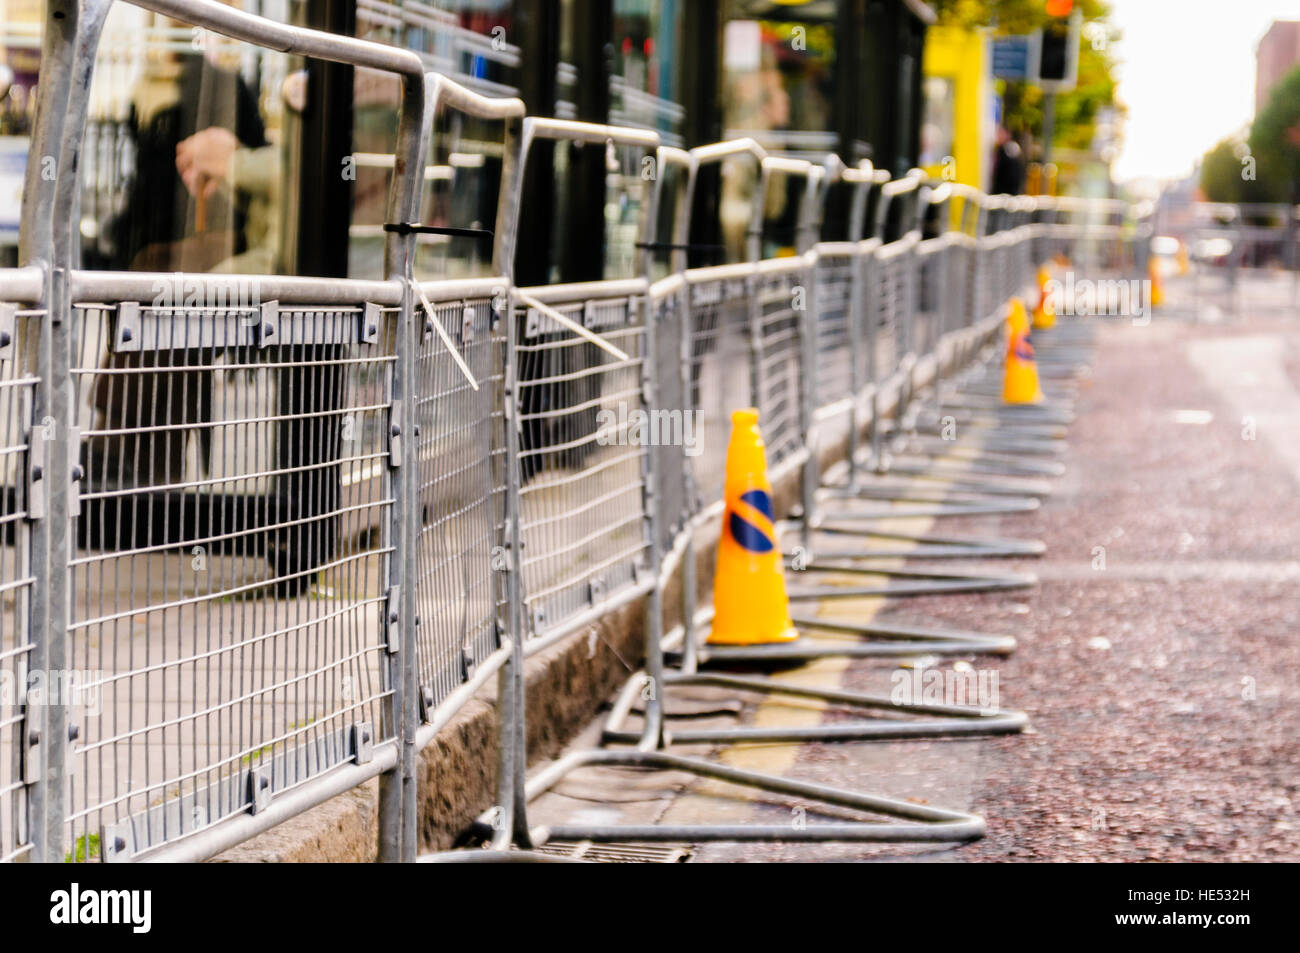 Crowd control barriers line a road to keep people back in advance of an event - Stock Image